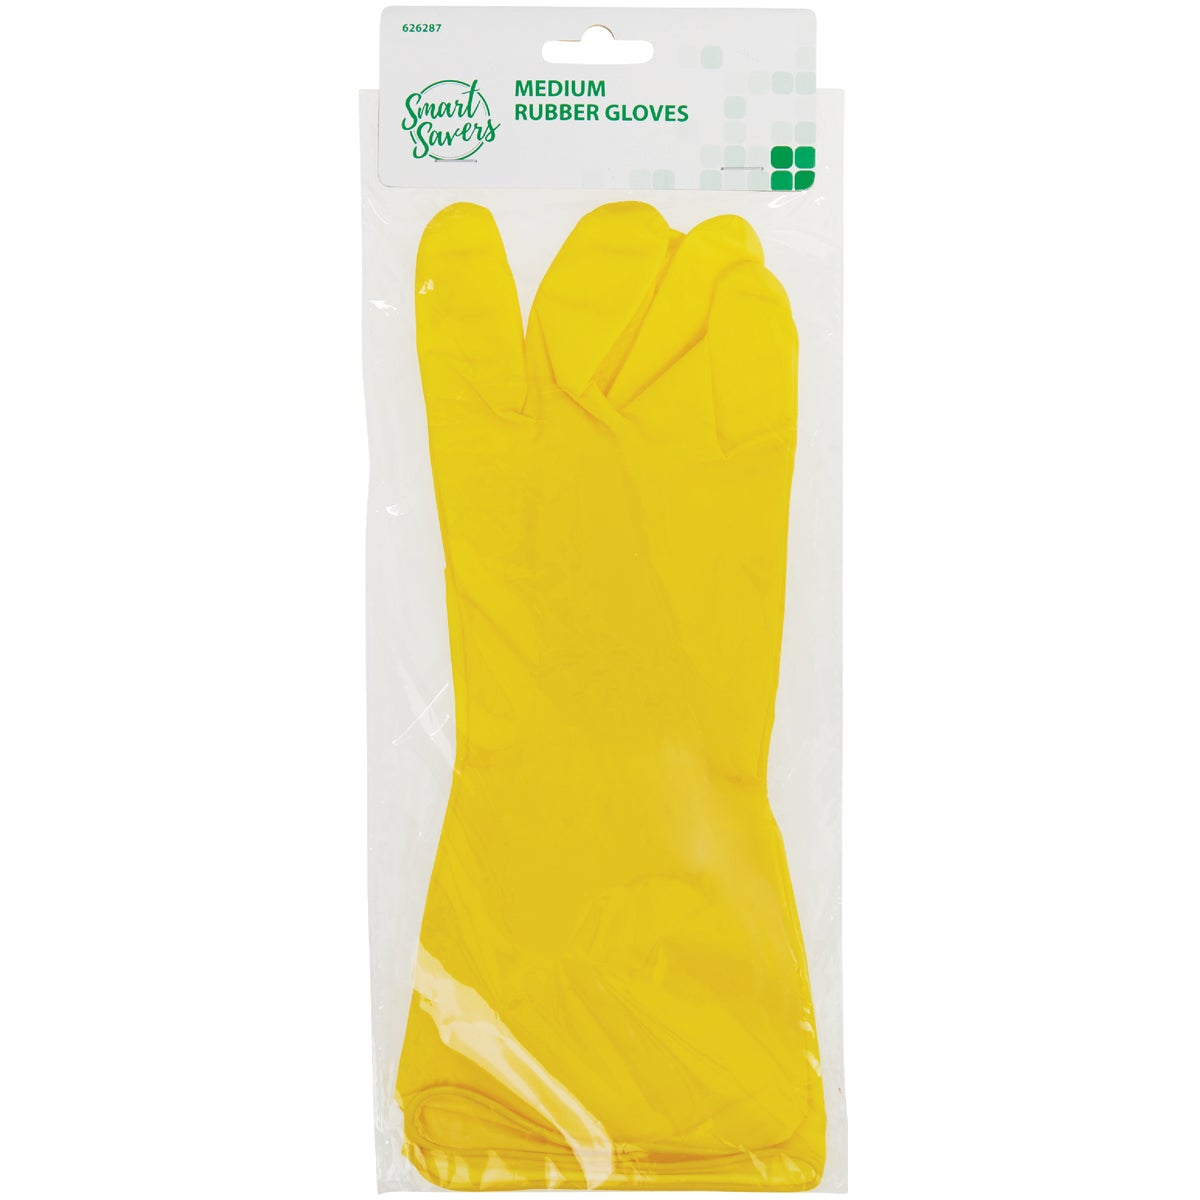 MEDIUM KITCHEN GLOVE - 820452 by Do it Best